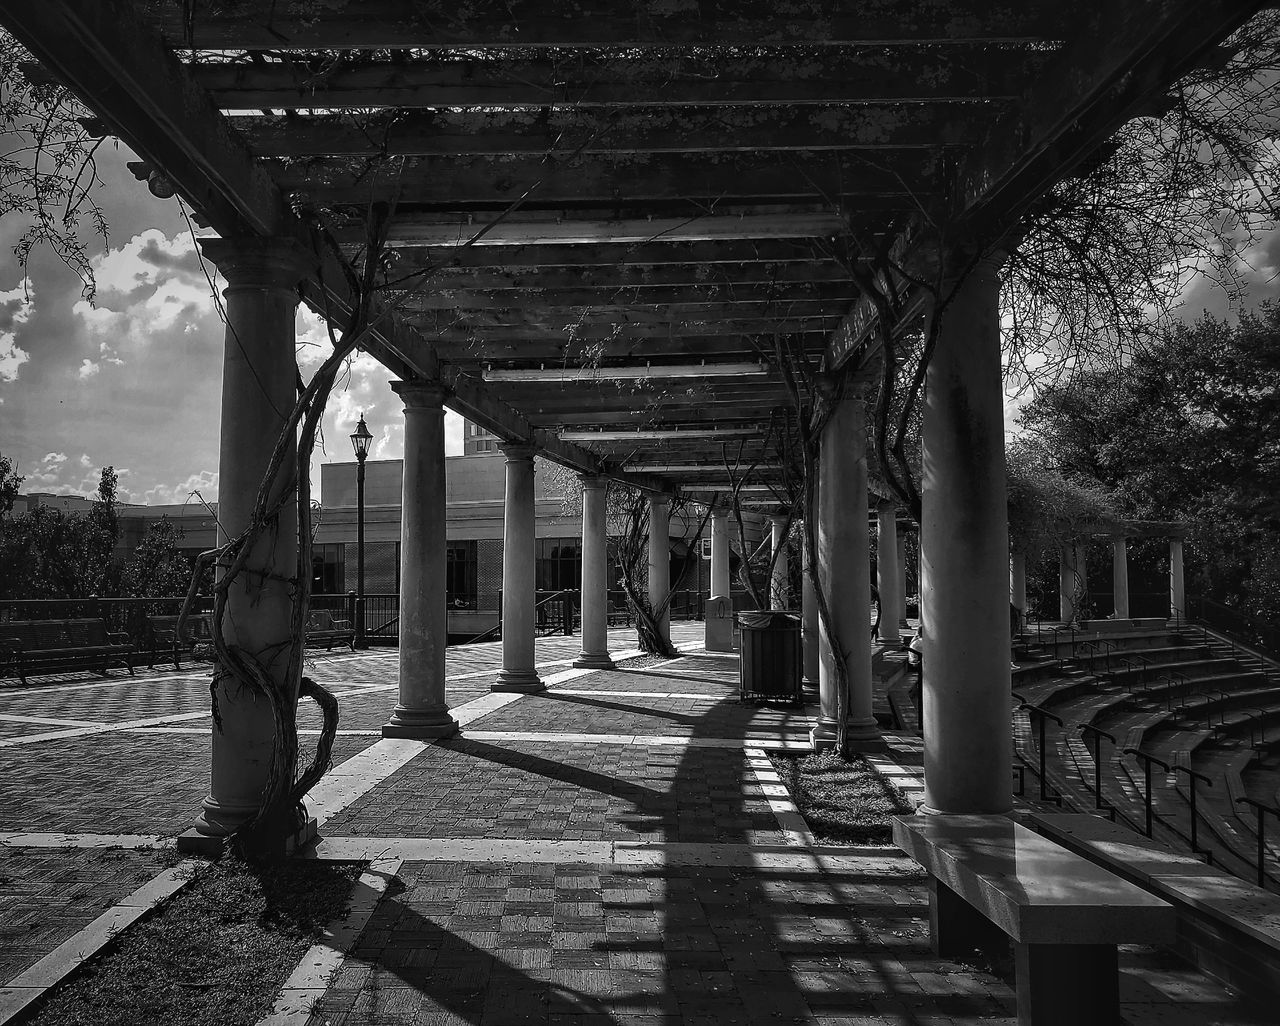 The shadows intrigue me Blackandwhite Symmetry Lines Georgia Augusta AugustaGeorgia EyeEm Selects City Downtown Riverwalk Bnw Bw_collection Fine Art Photography Sunlight Architecture Built Structure Sky Under Underneath Passageway